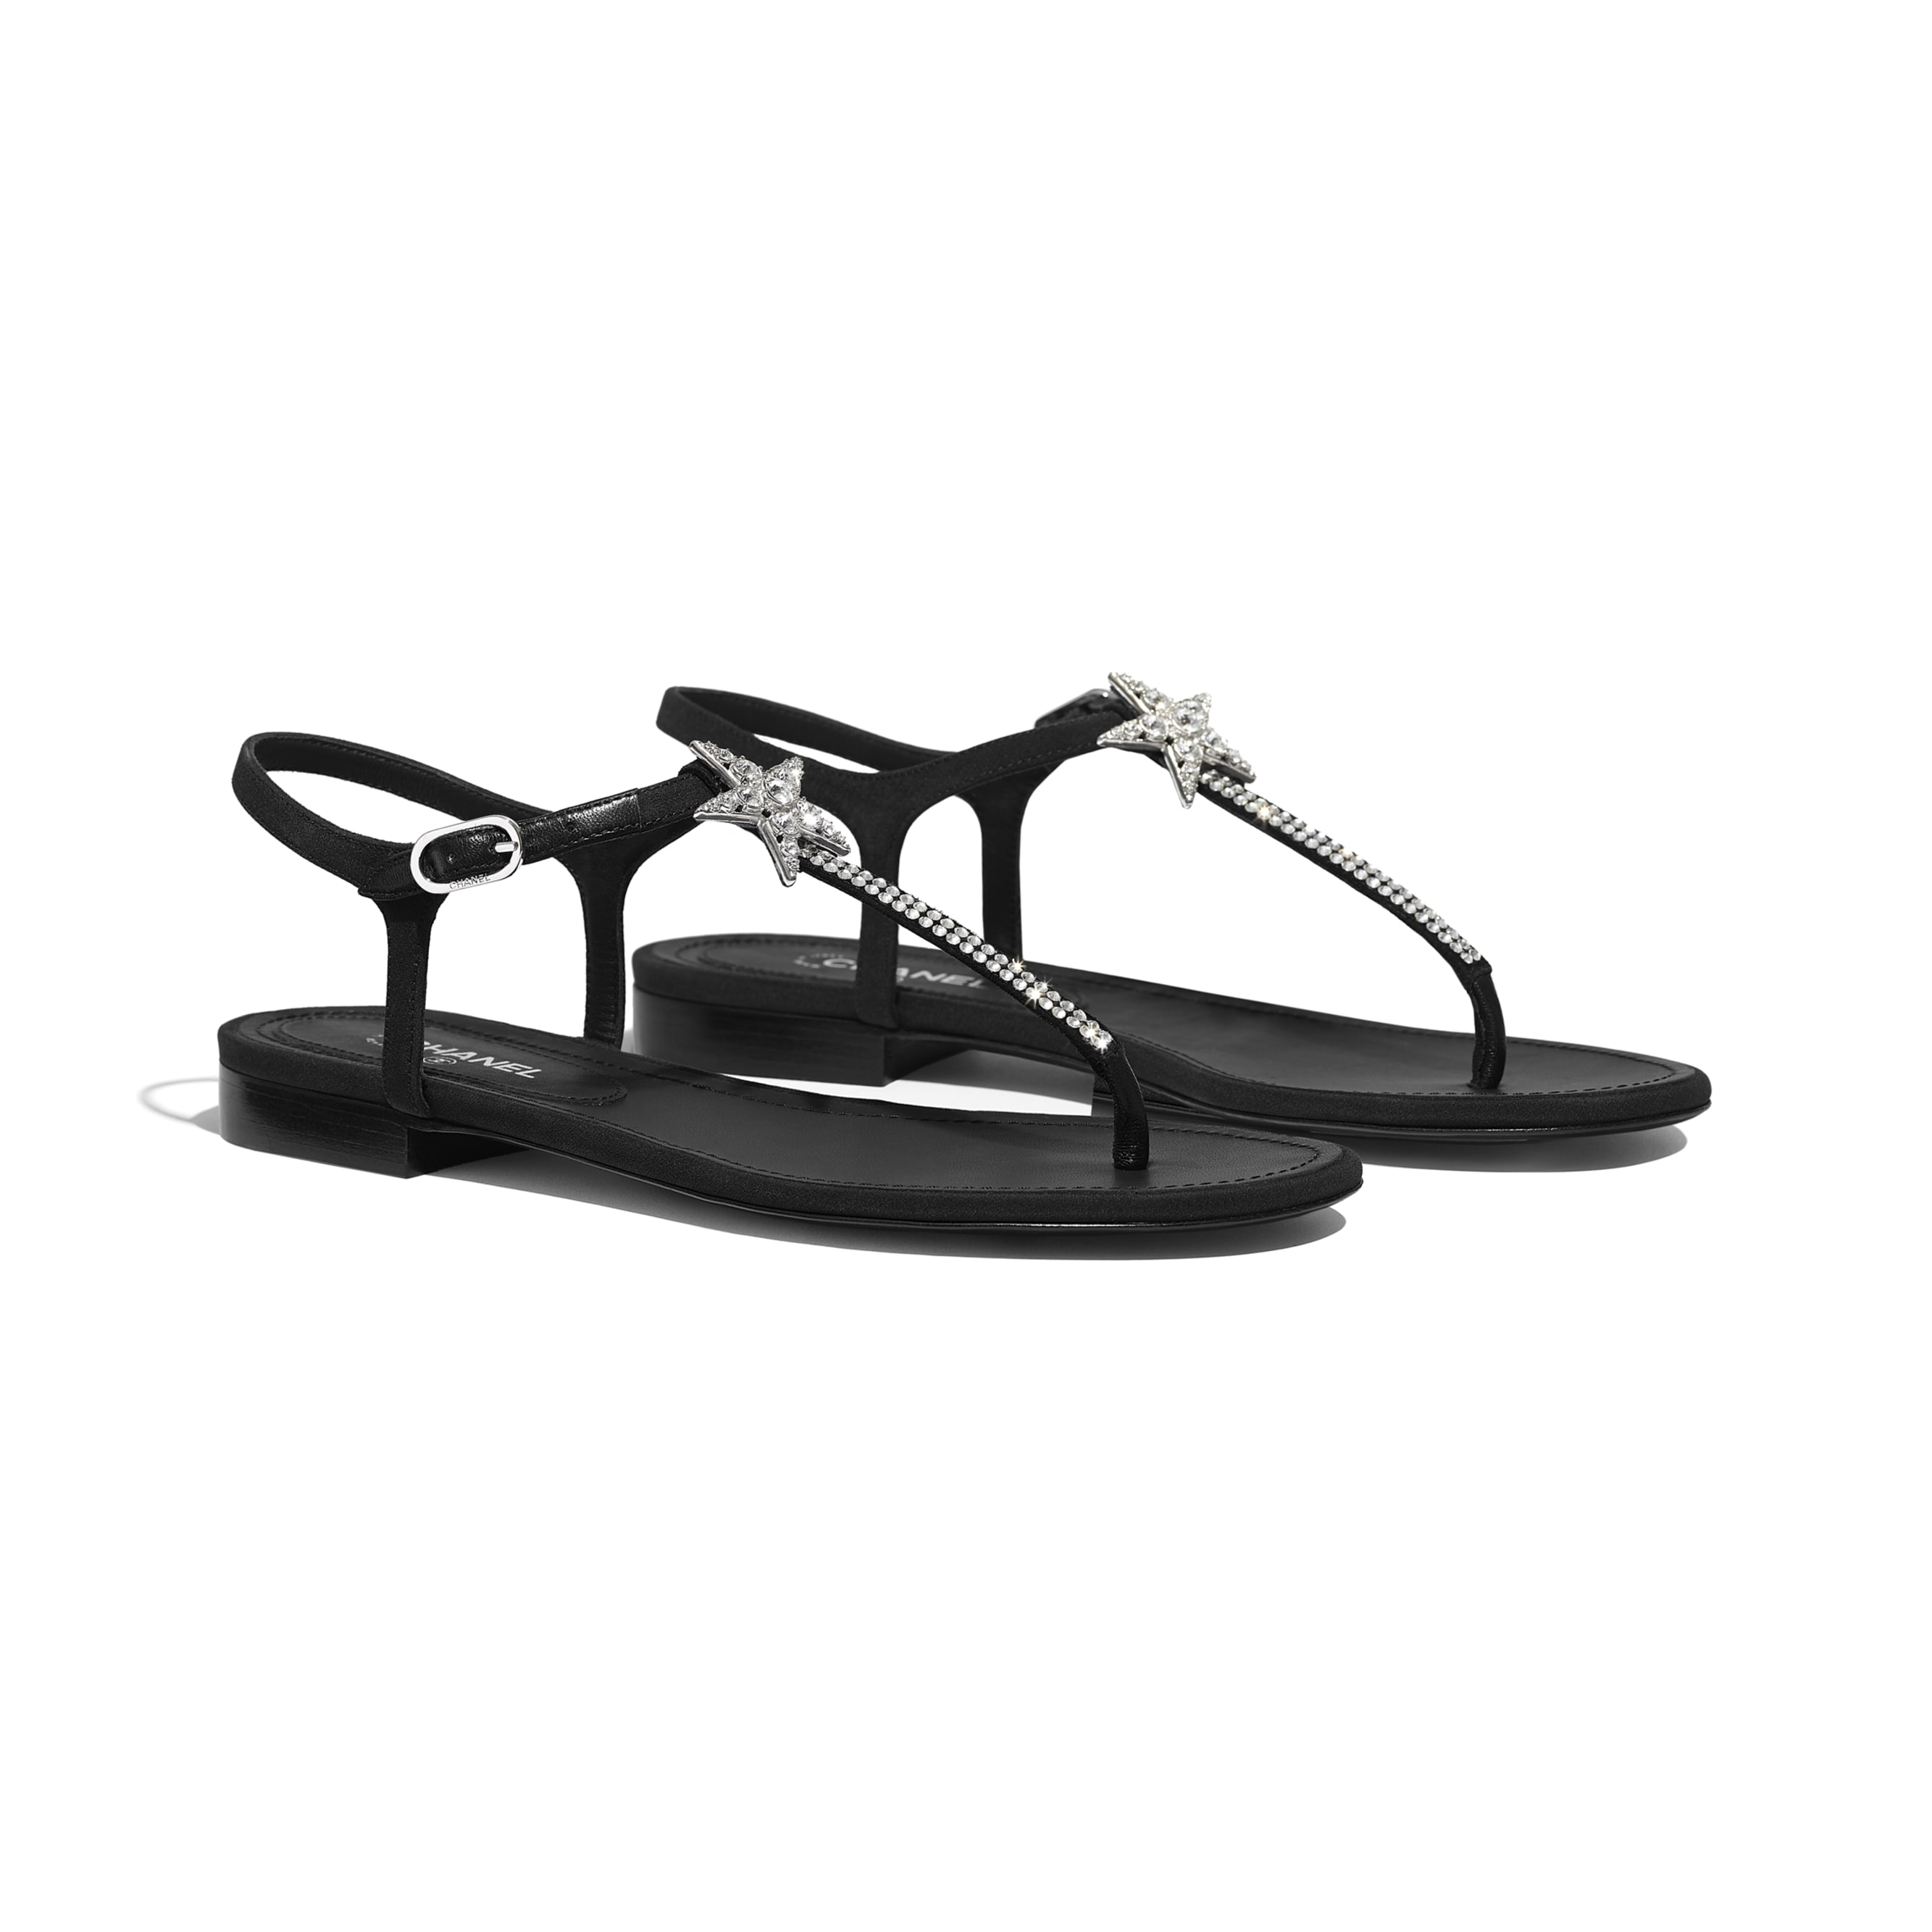 Sandals - Black - Crepe De Chine - CHANEL - Alternative view - see standard sized version